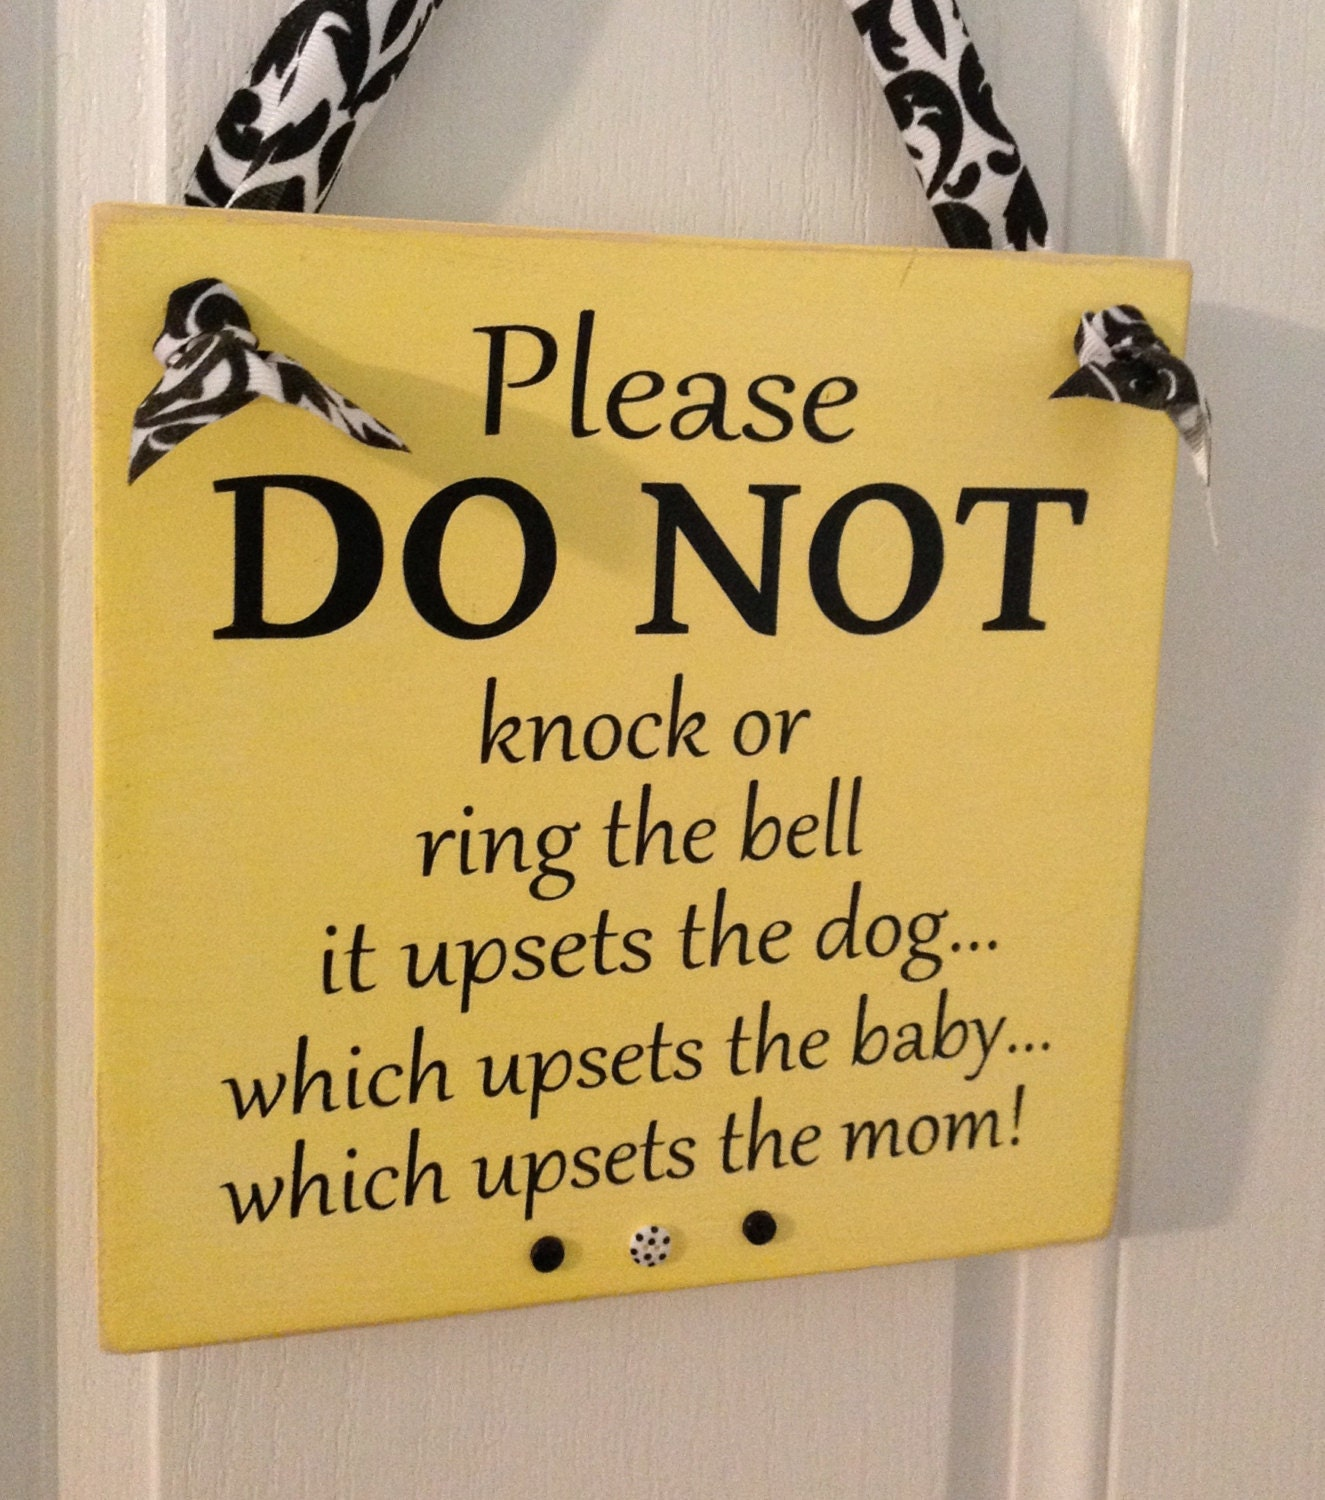 Please DO NOT knock... Upset dog baby and mom by likeIsaid on Etsy